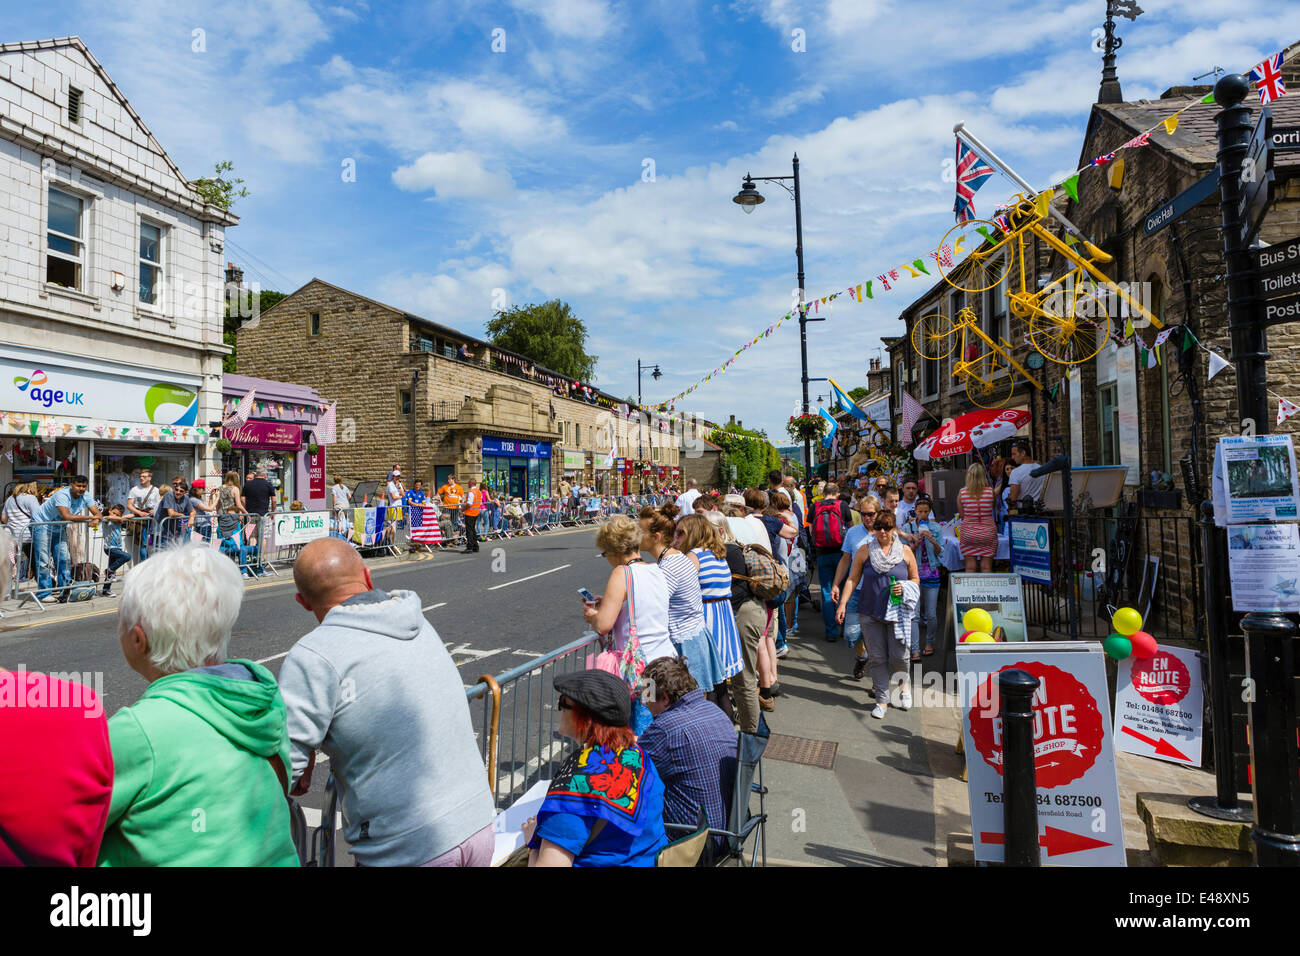 Crowds along the route of stage 2 of the 2014 Tour de France  in the centre of the West Yorkshire town of Holmfirth, - Stock Image